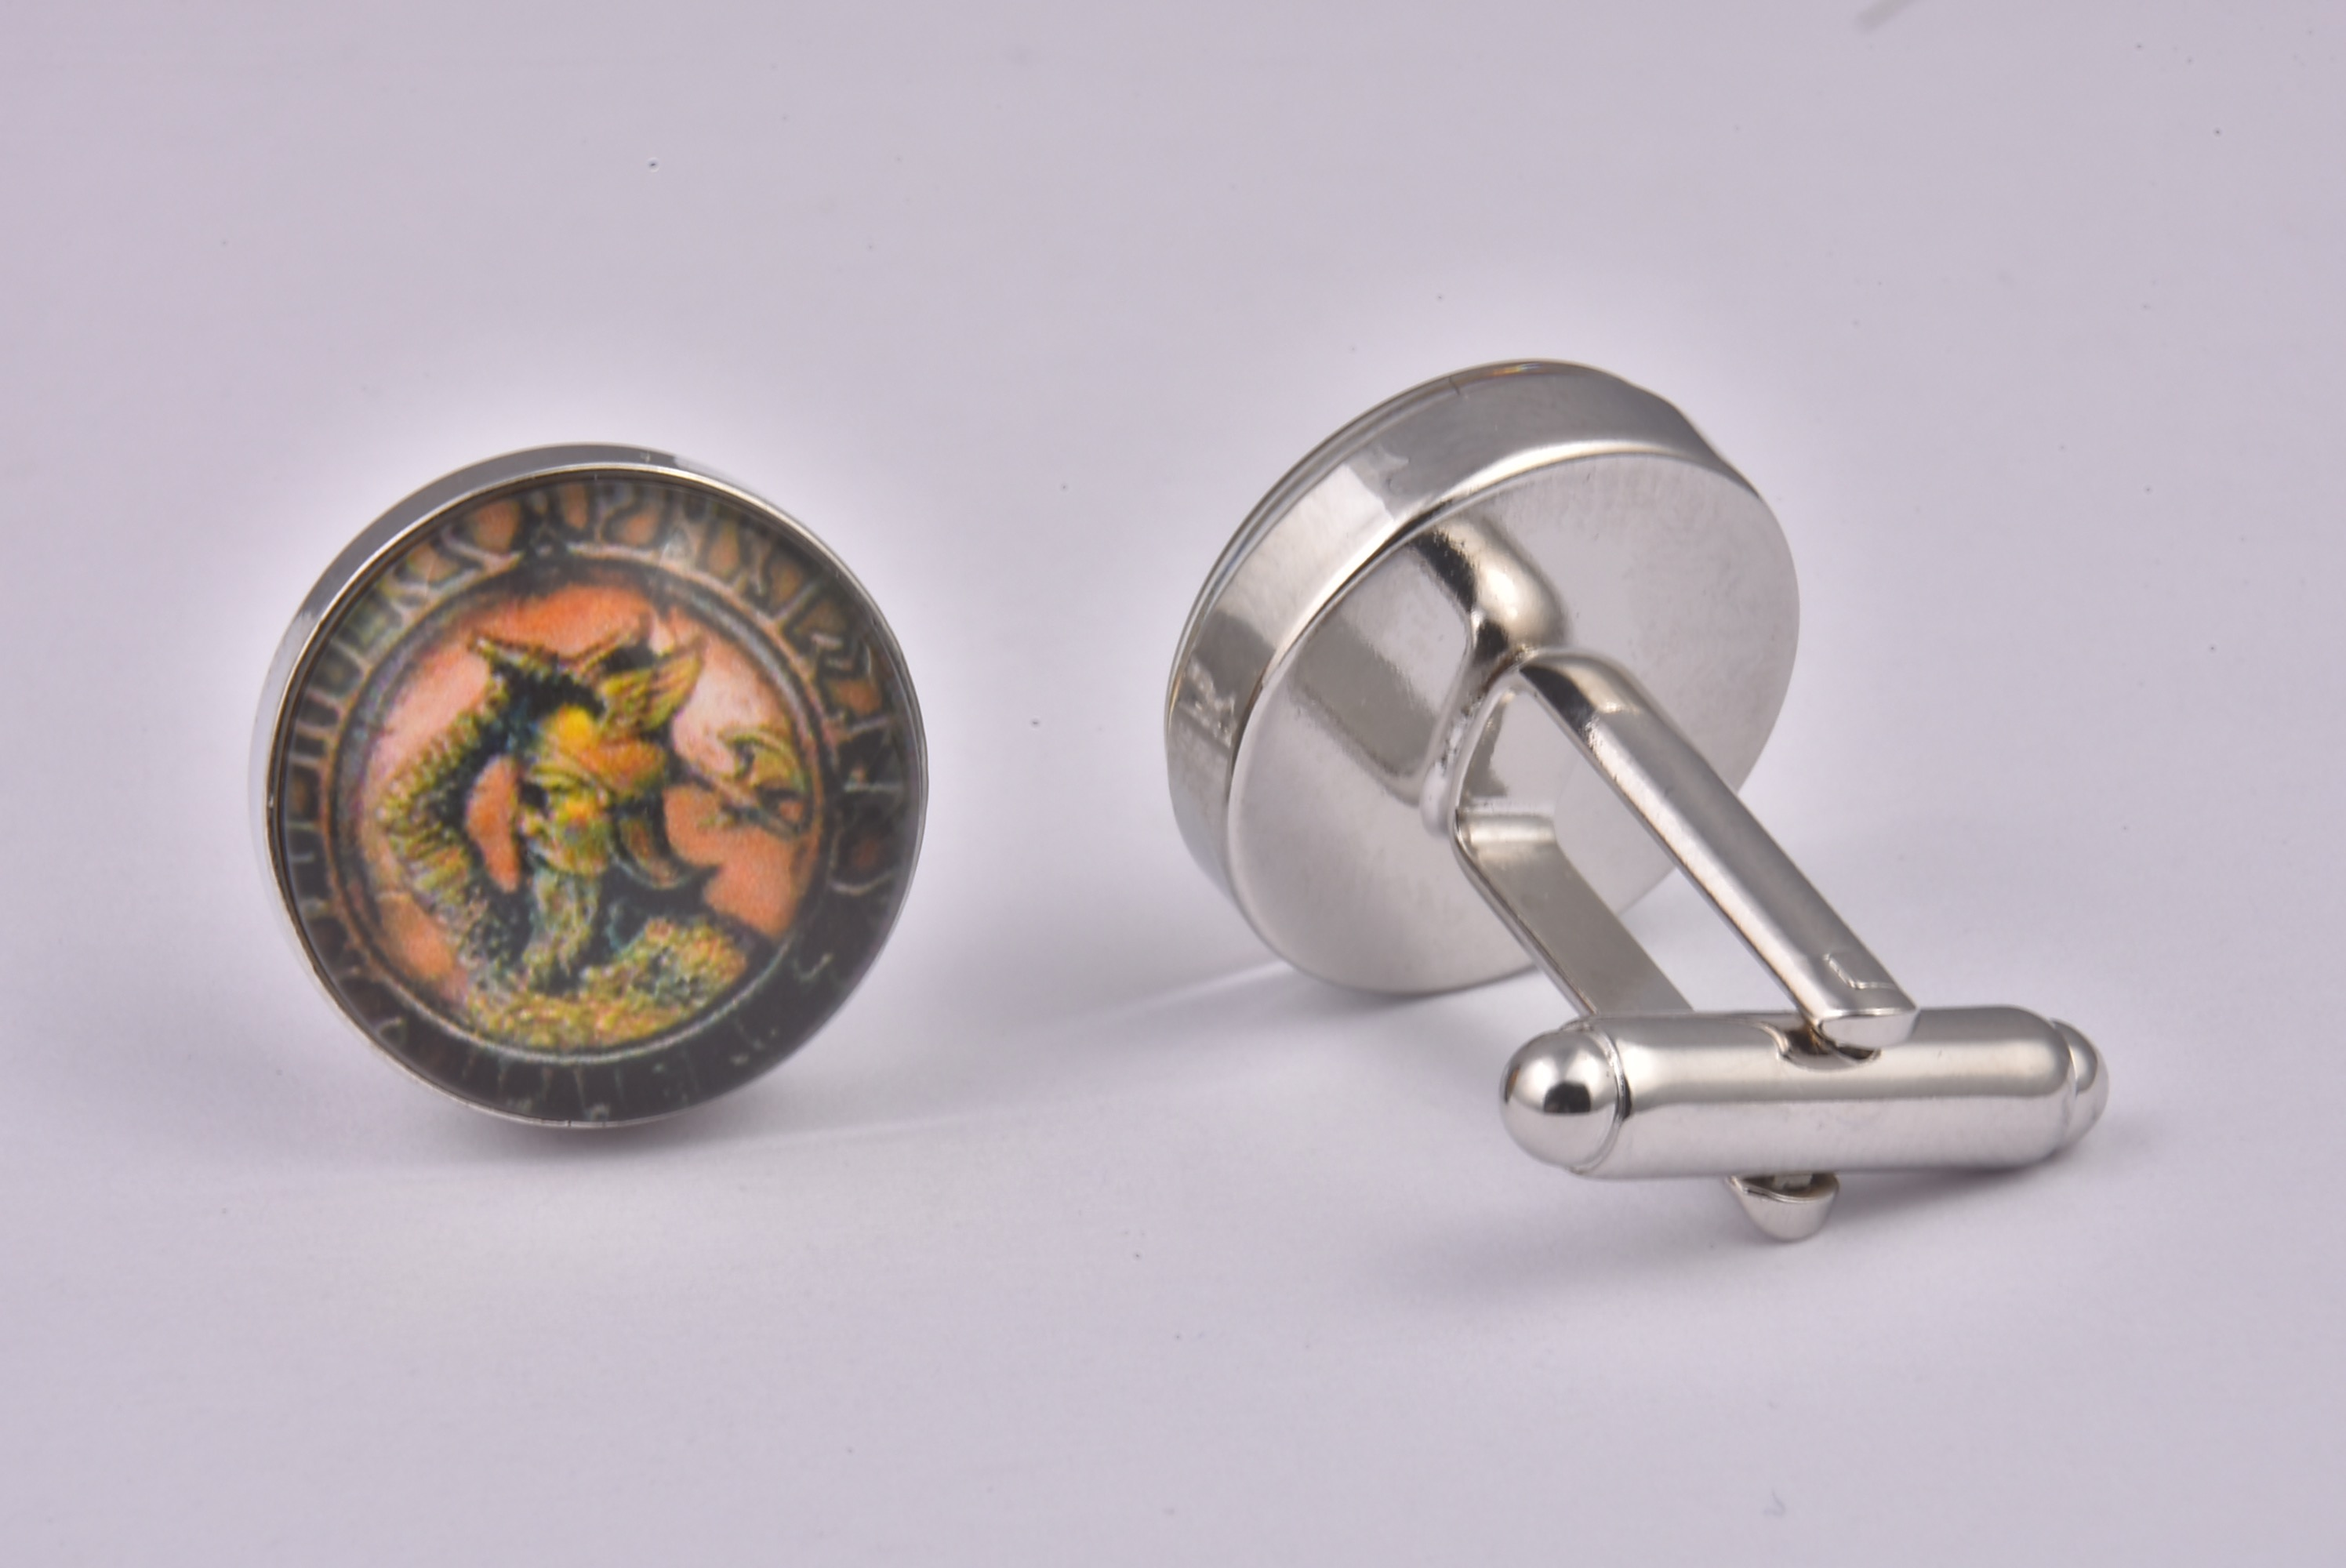 Viking Warrior Cufflinks | Men's Cufflinks